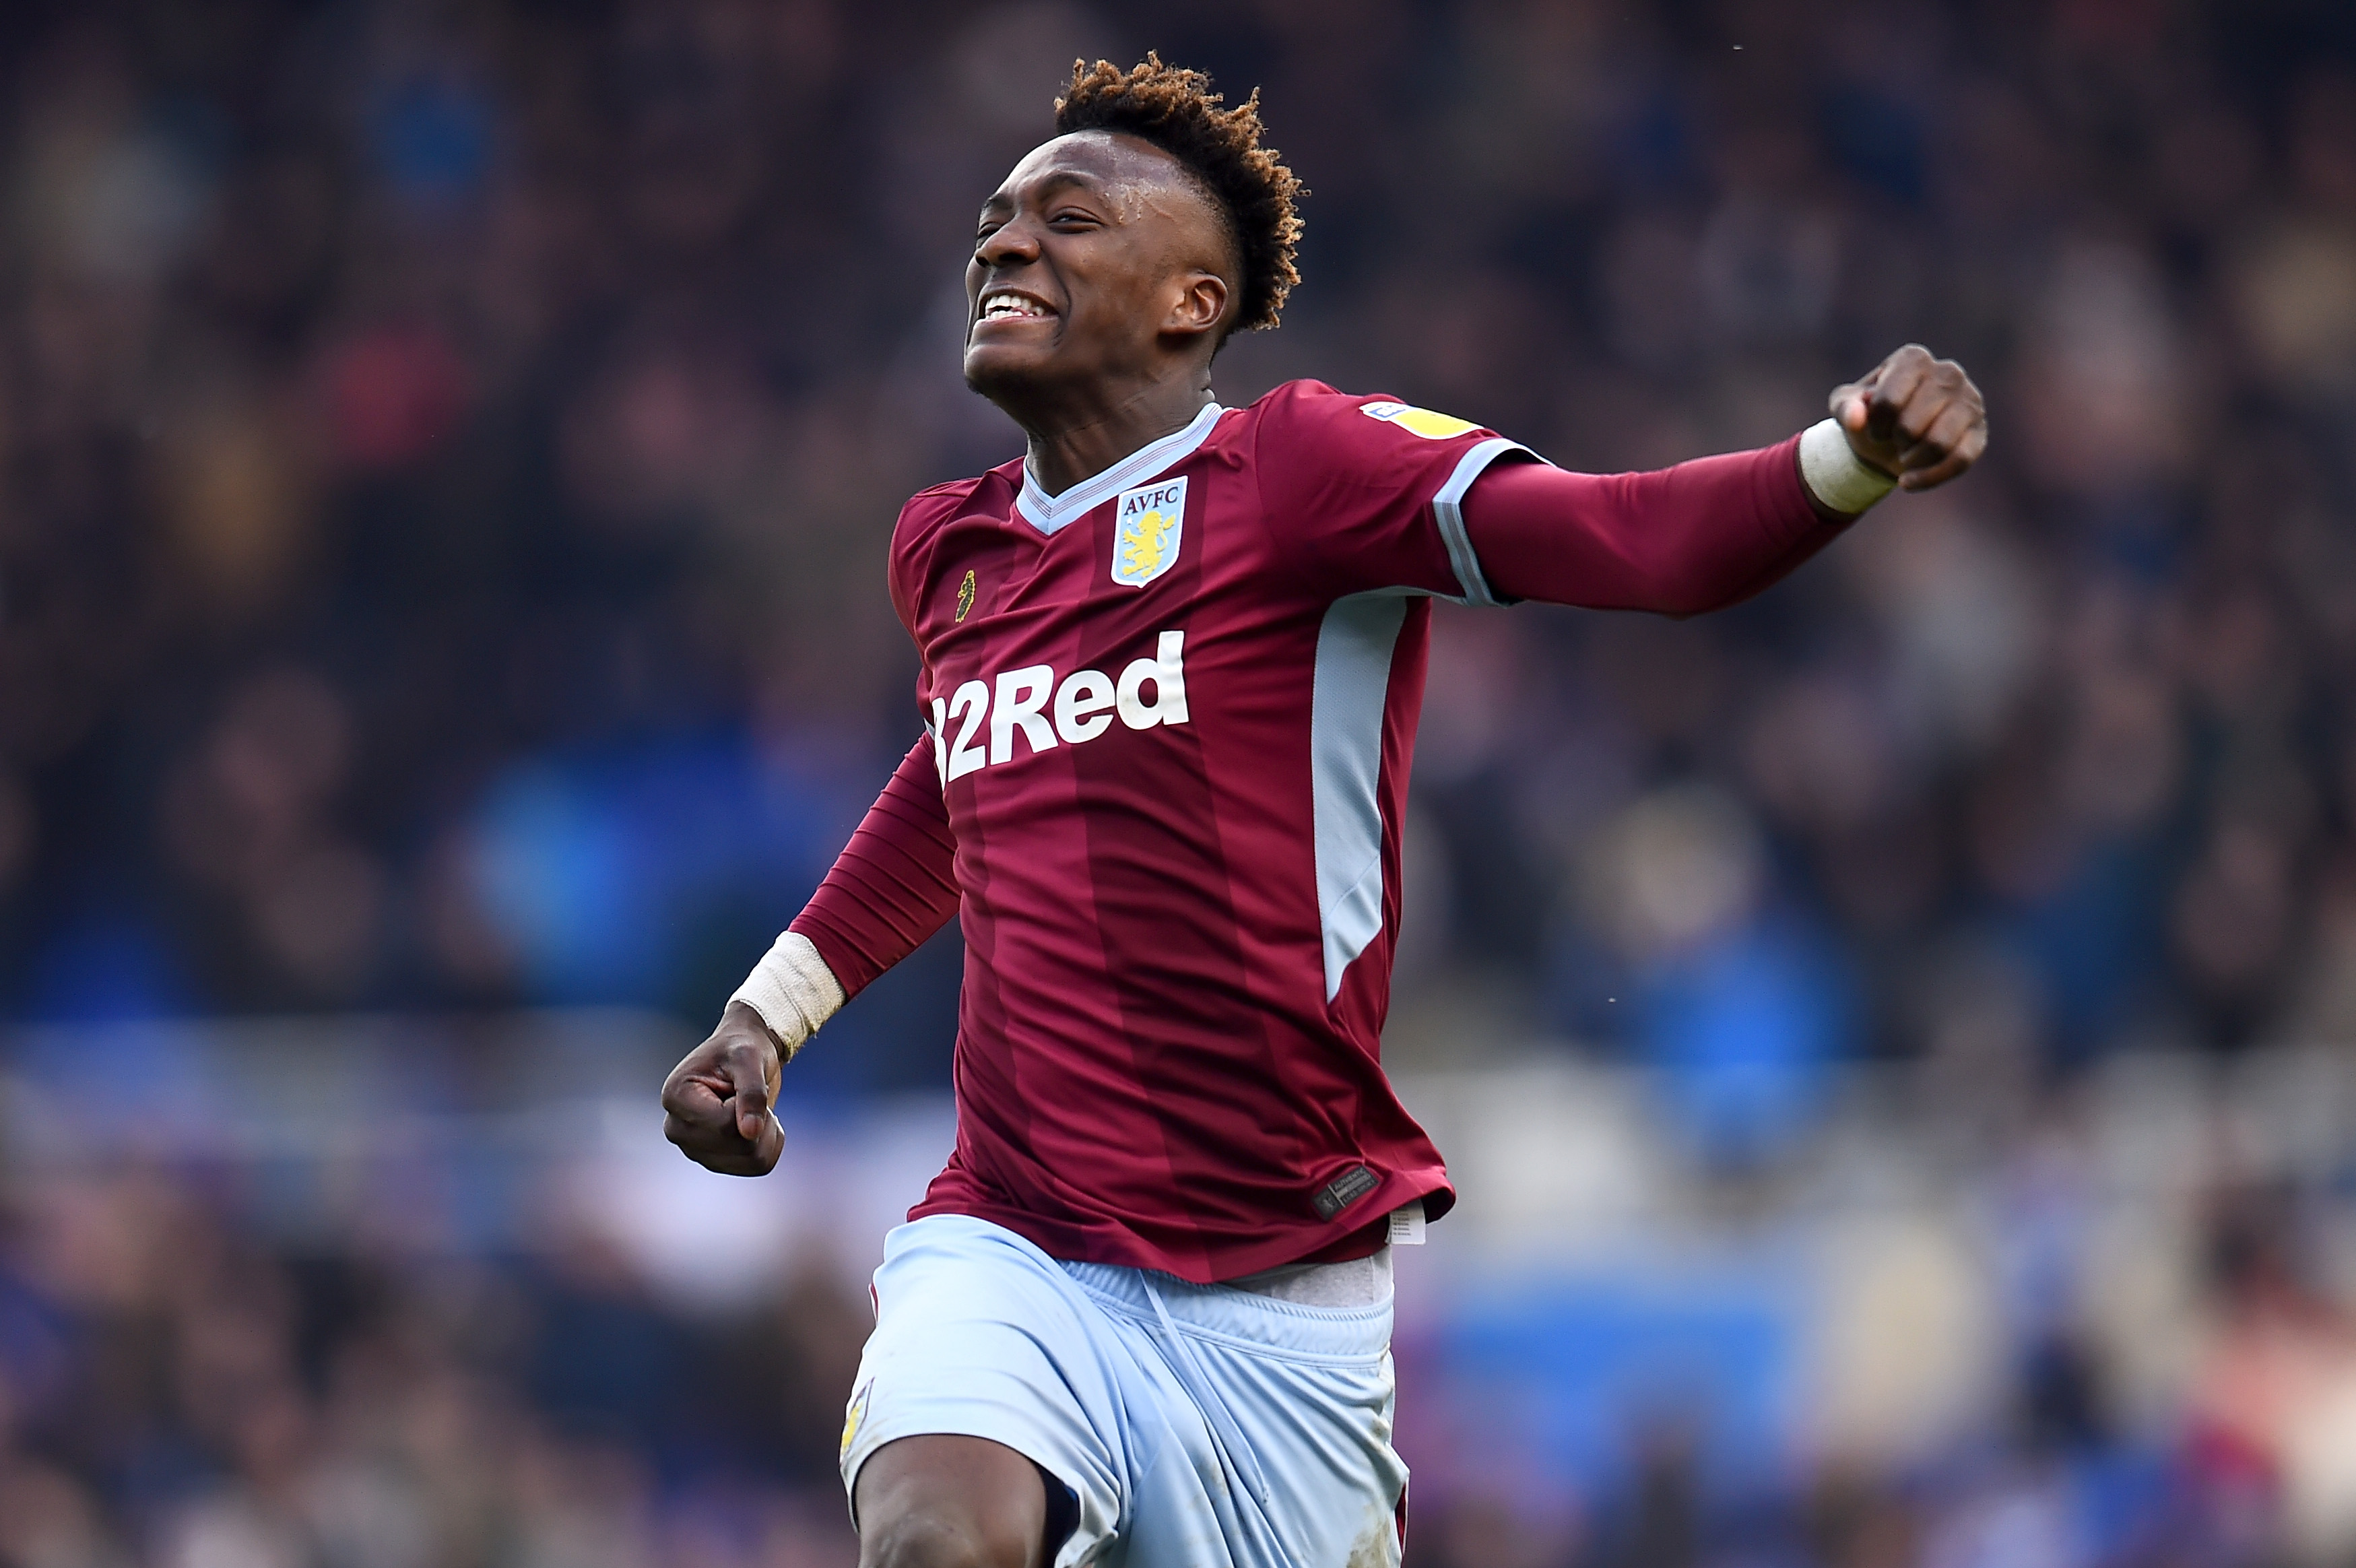 Abraham on his way back to Aston Villa? (Photo by Nathan Stirk/Getty Images)